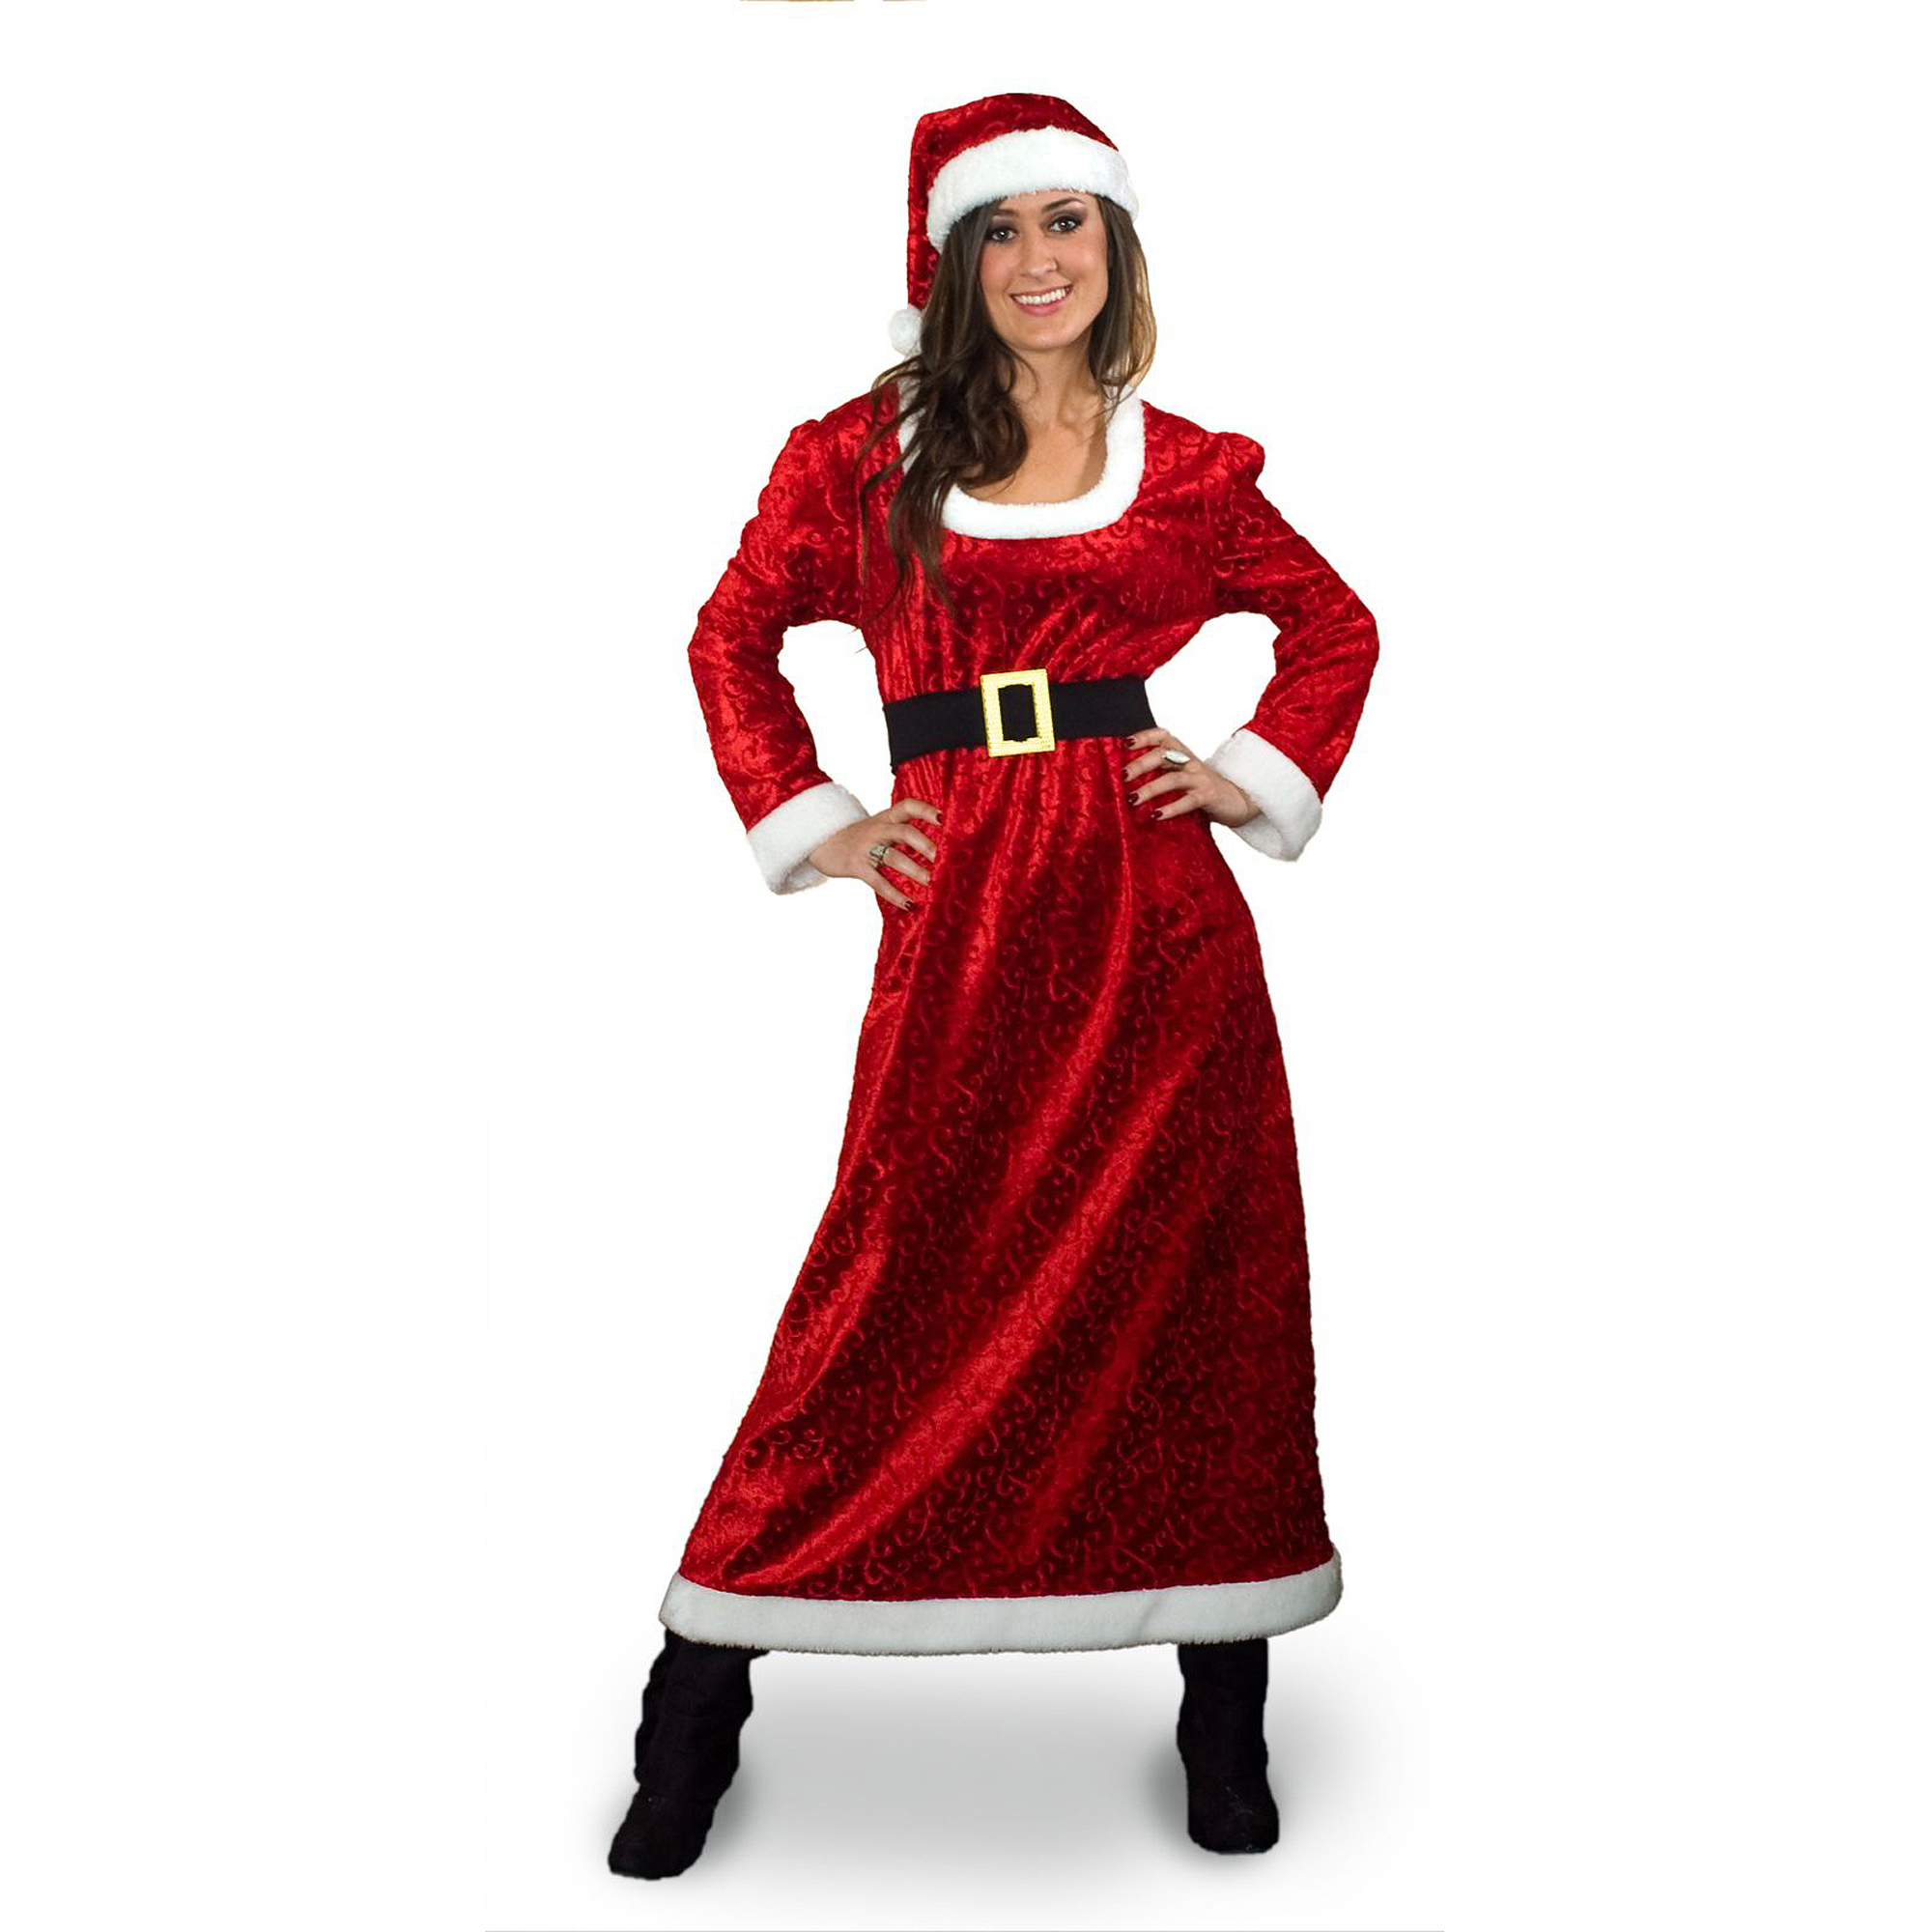 Sunnywood Charming Ms. Santa Costume